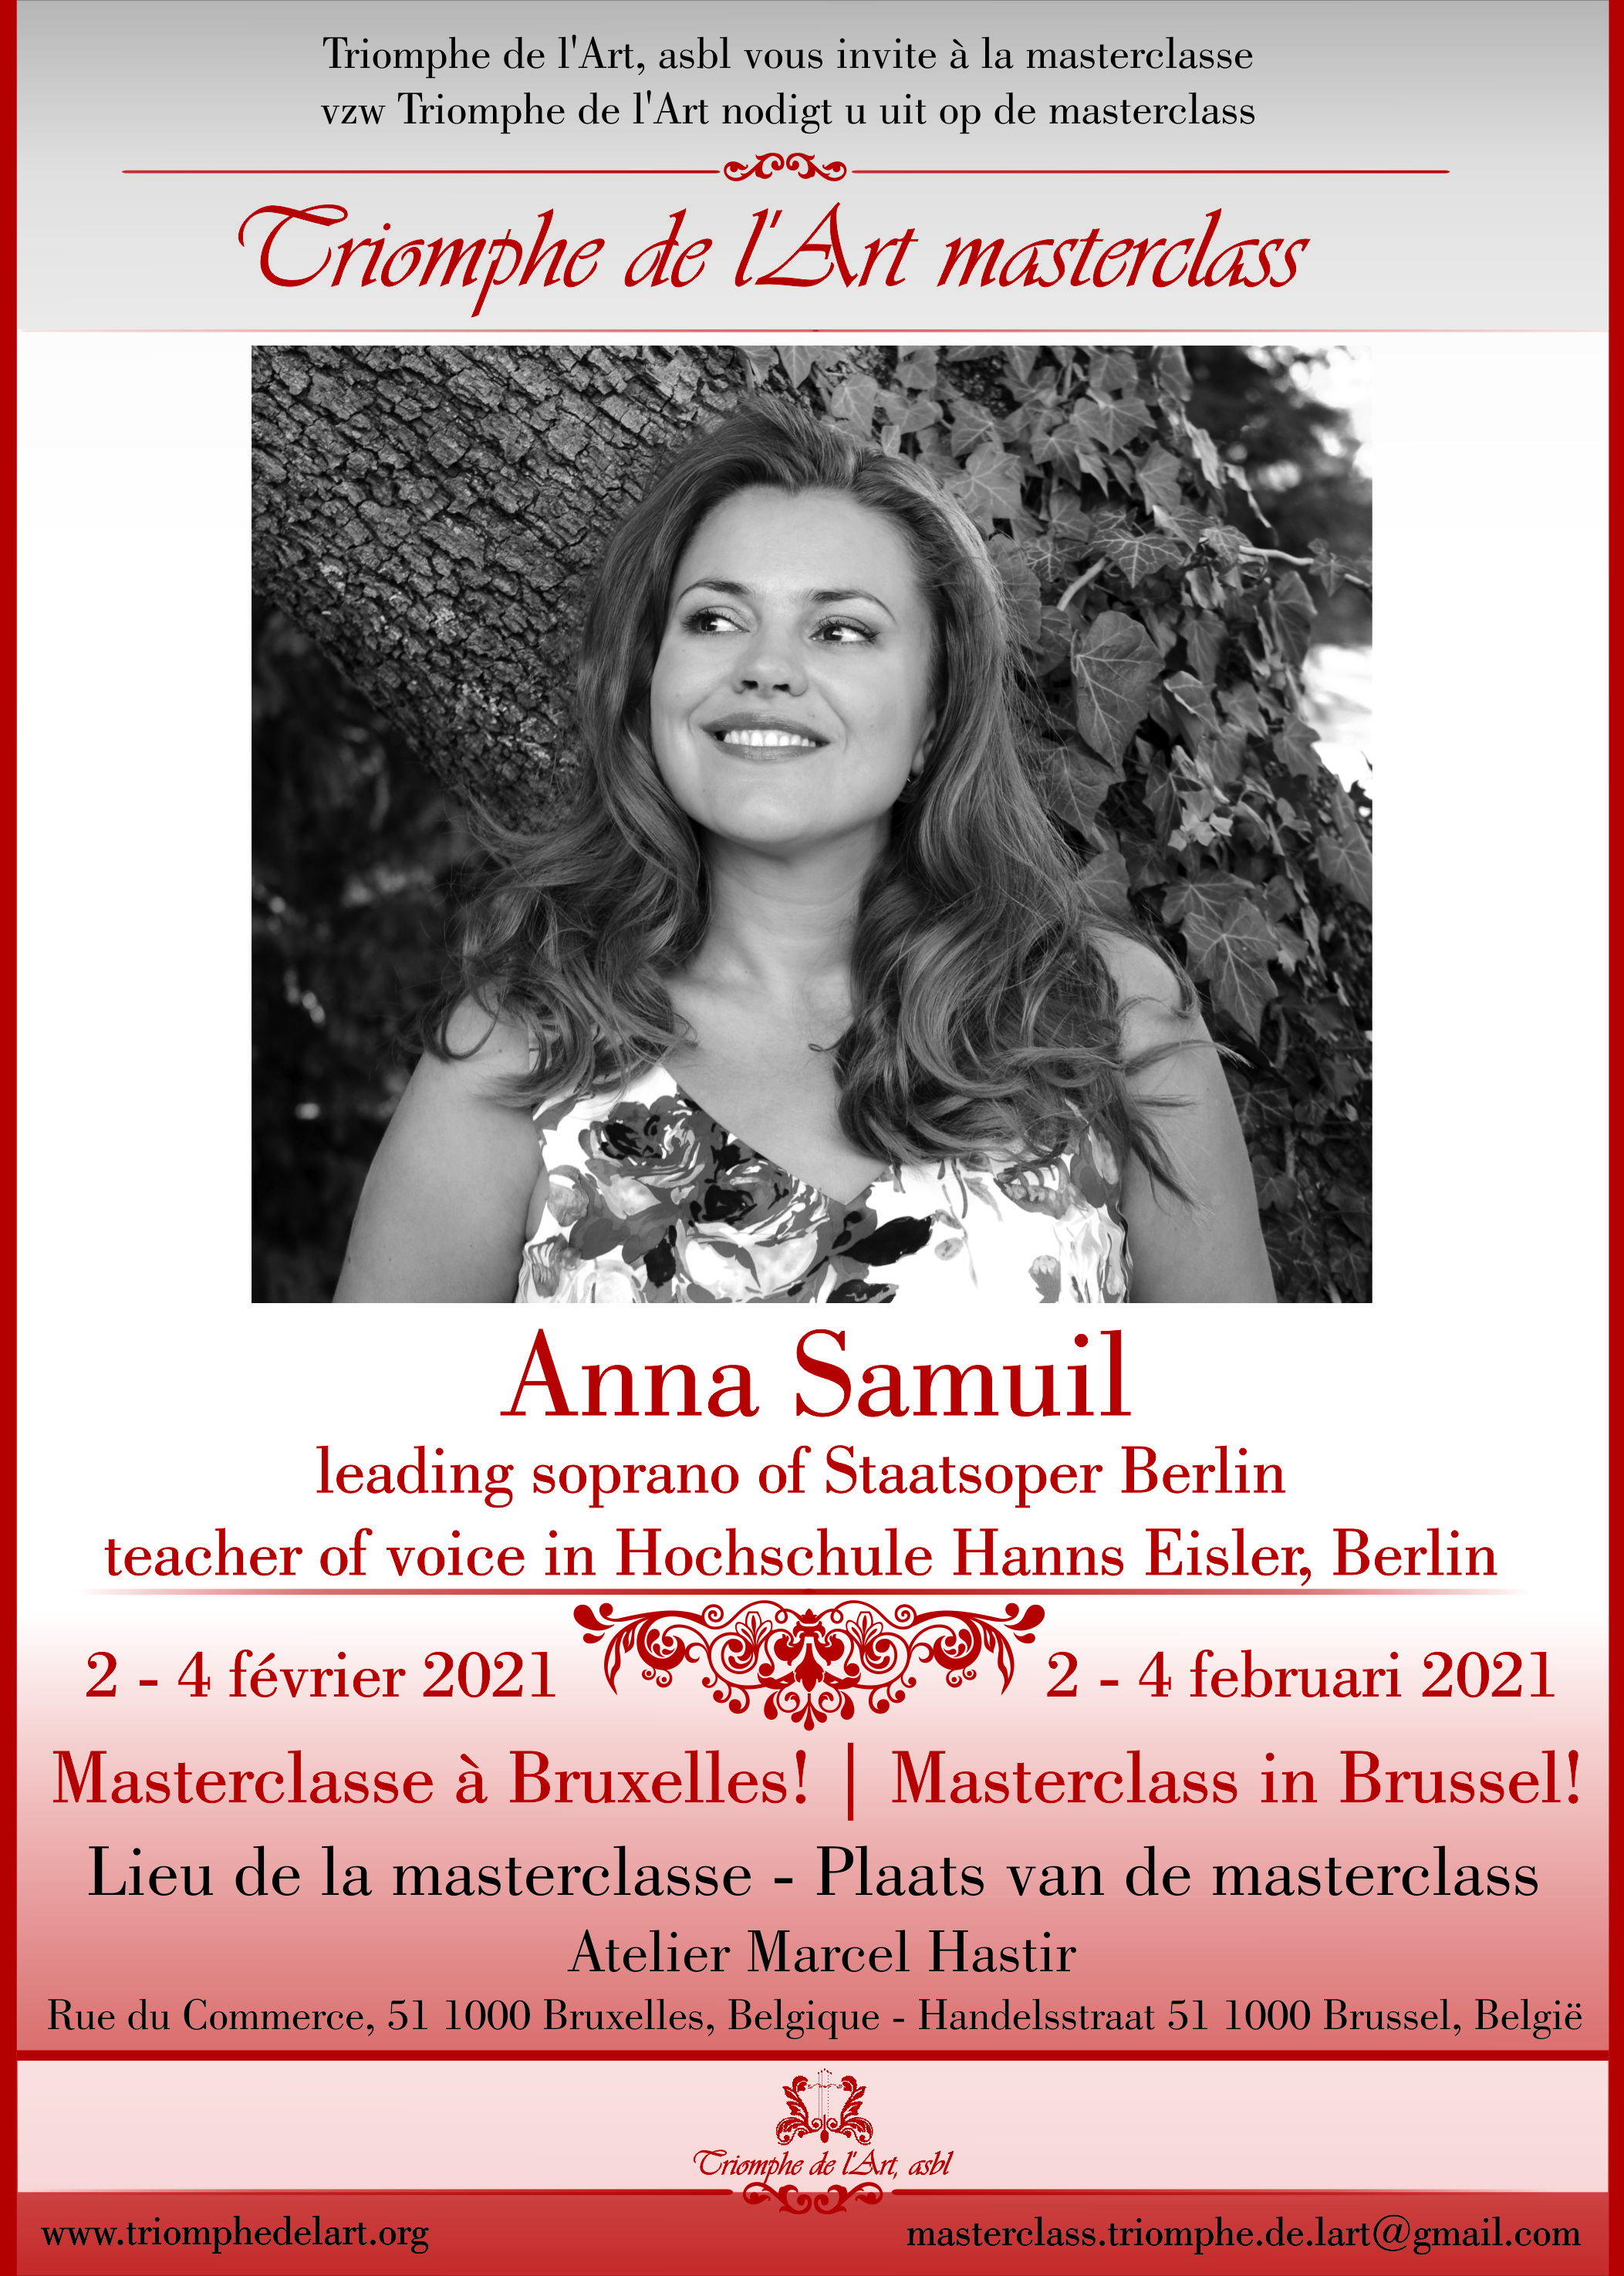 Vocal masterclass of Anna Samuil